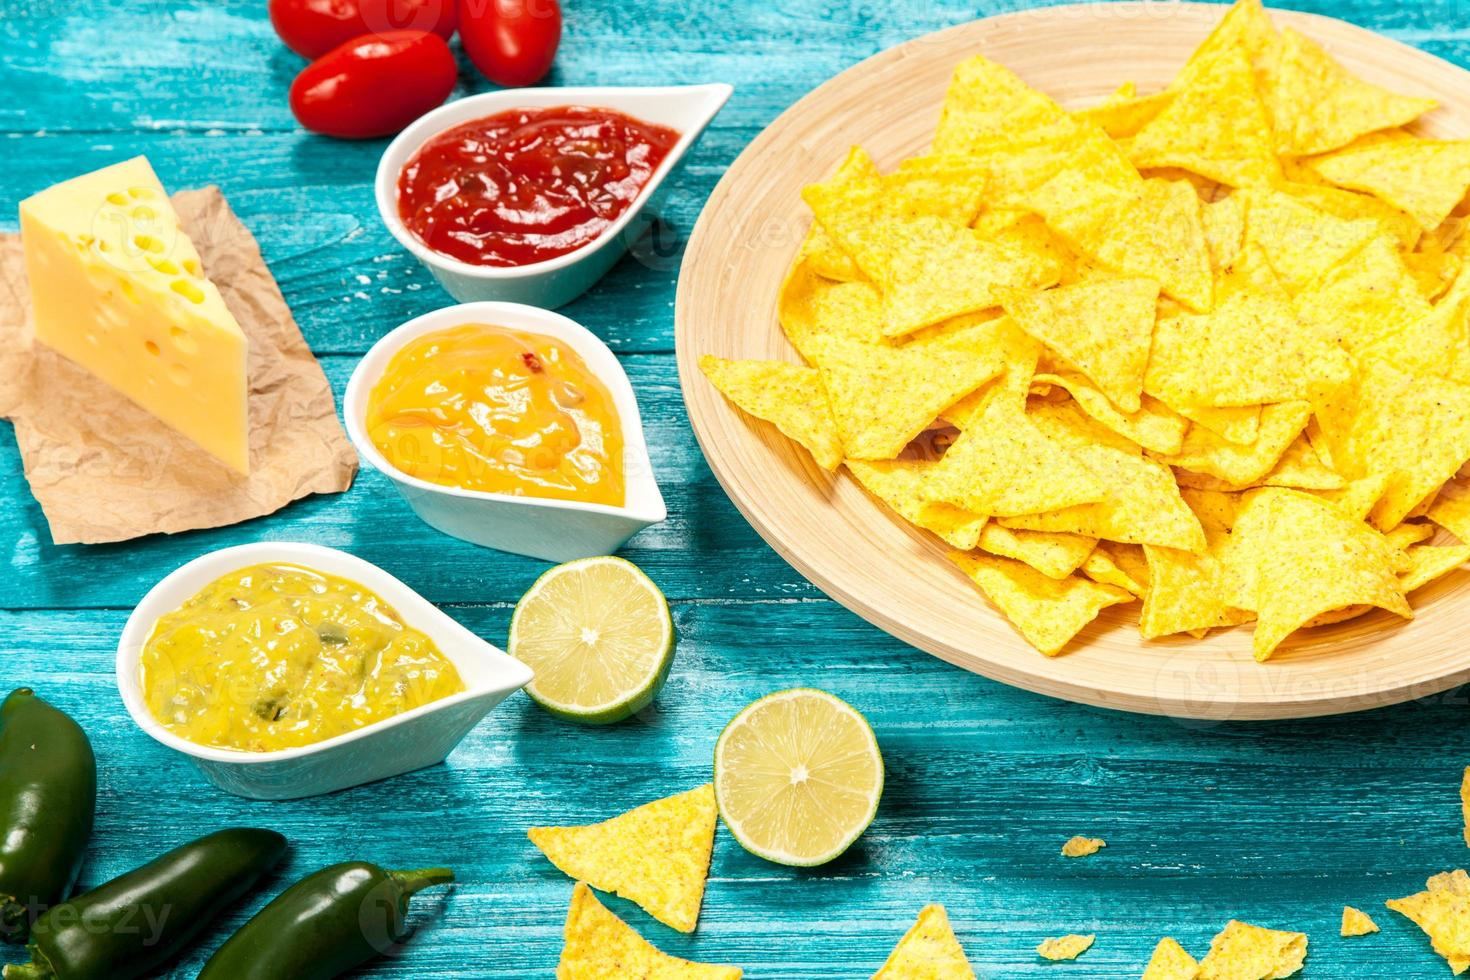 Plate of nachos with different dips photo